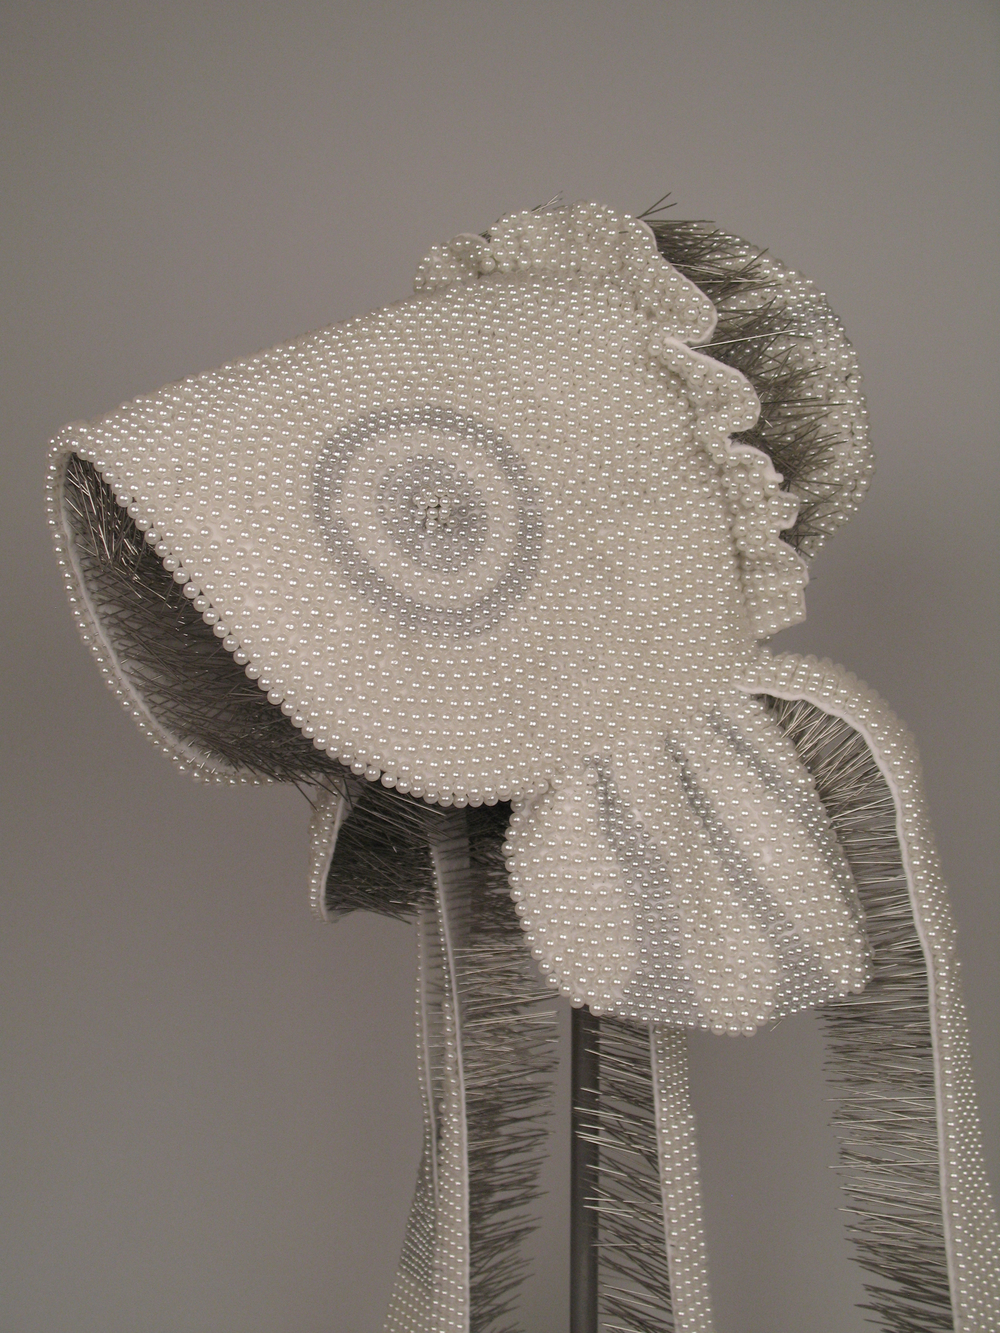 "Seer Bonnet XII  4,609 pearl corsage pins, fabric, steel, 54"" x 12"" x 15"", 2010"